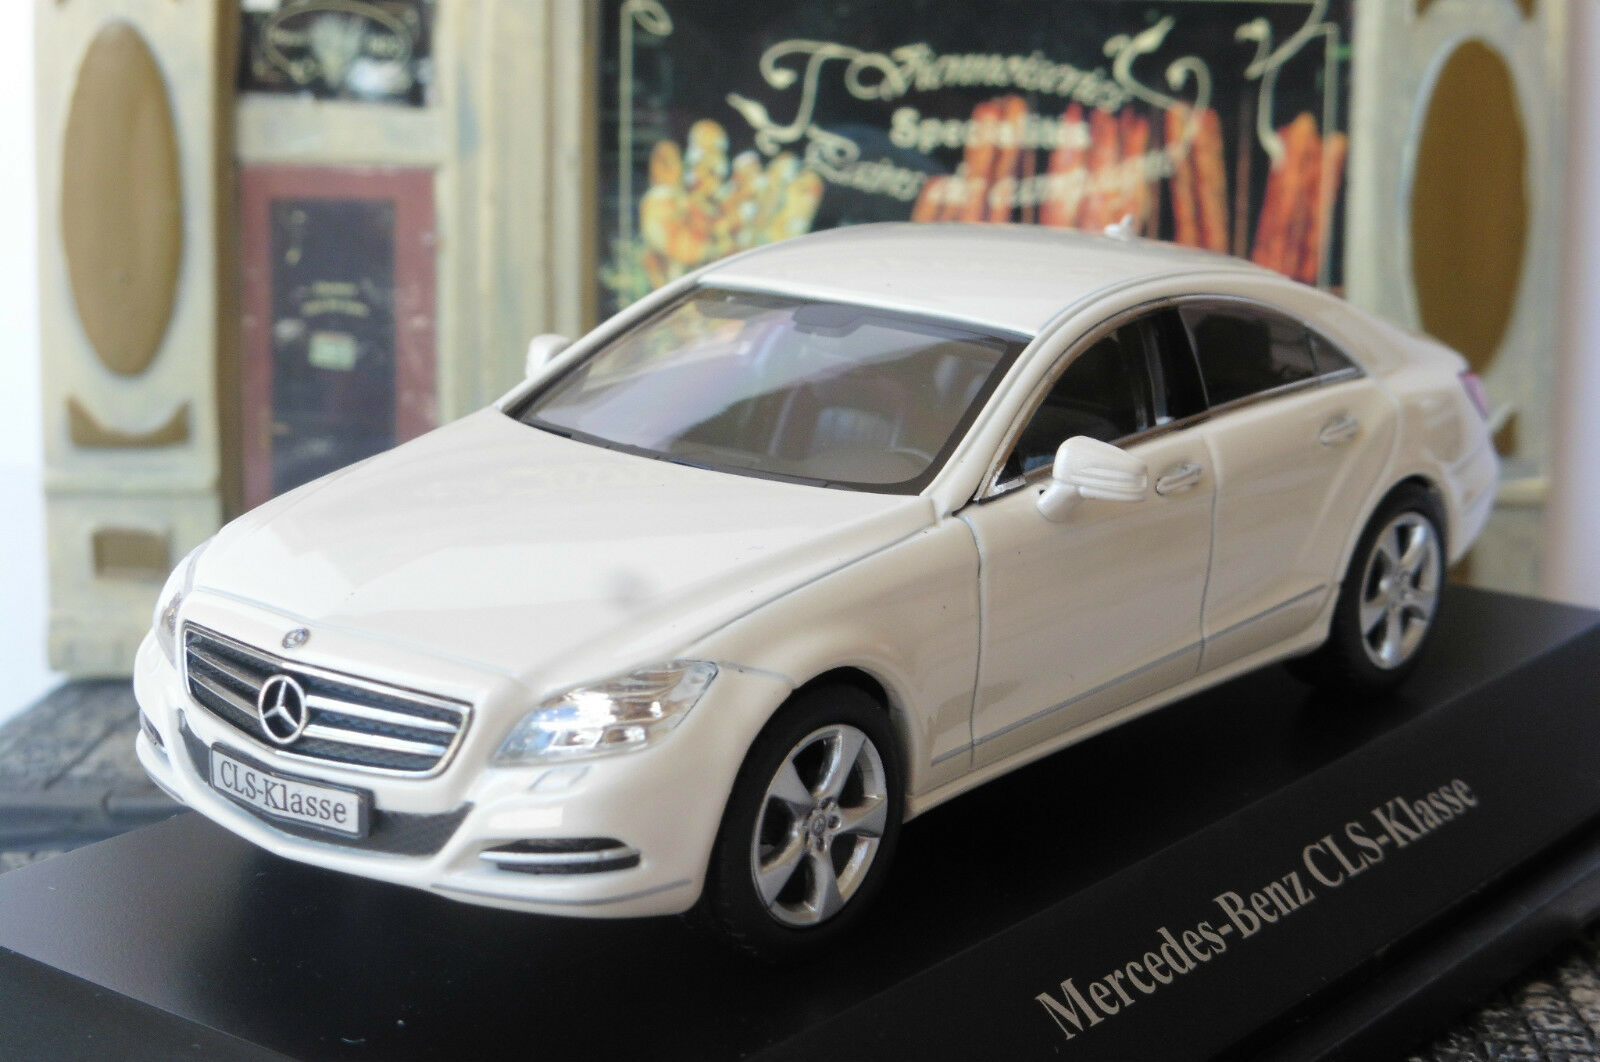 MERCEDES BENZ CLS KLASSE COUPE 2010 C204 DIAMOND blanc METAL NOREV B66961294